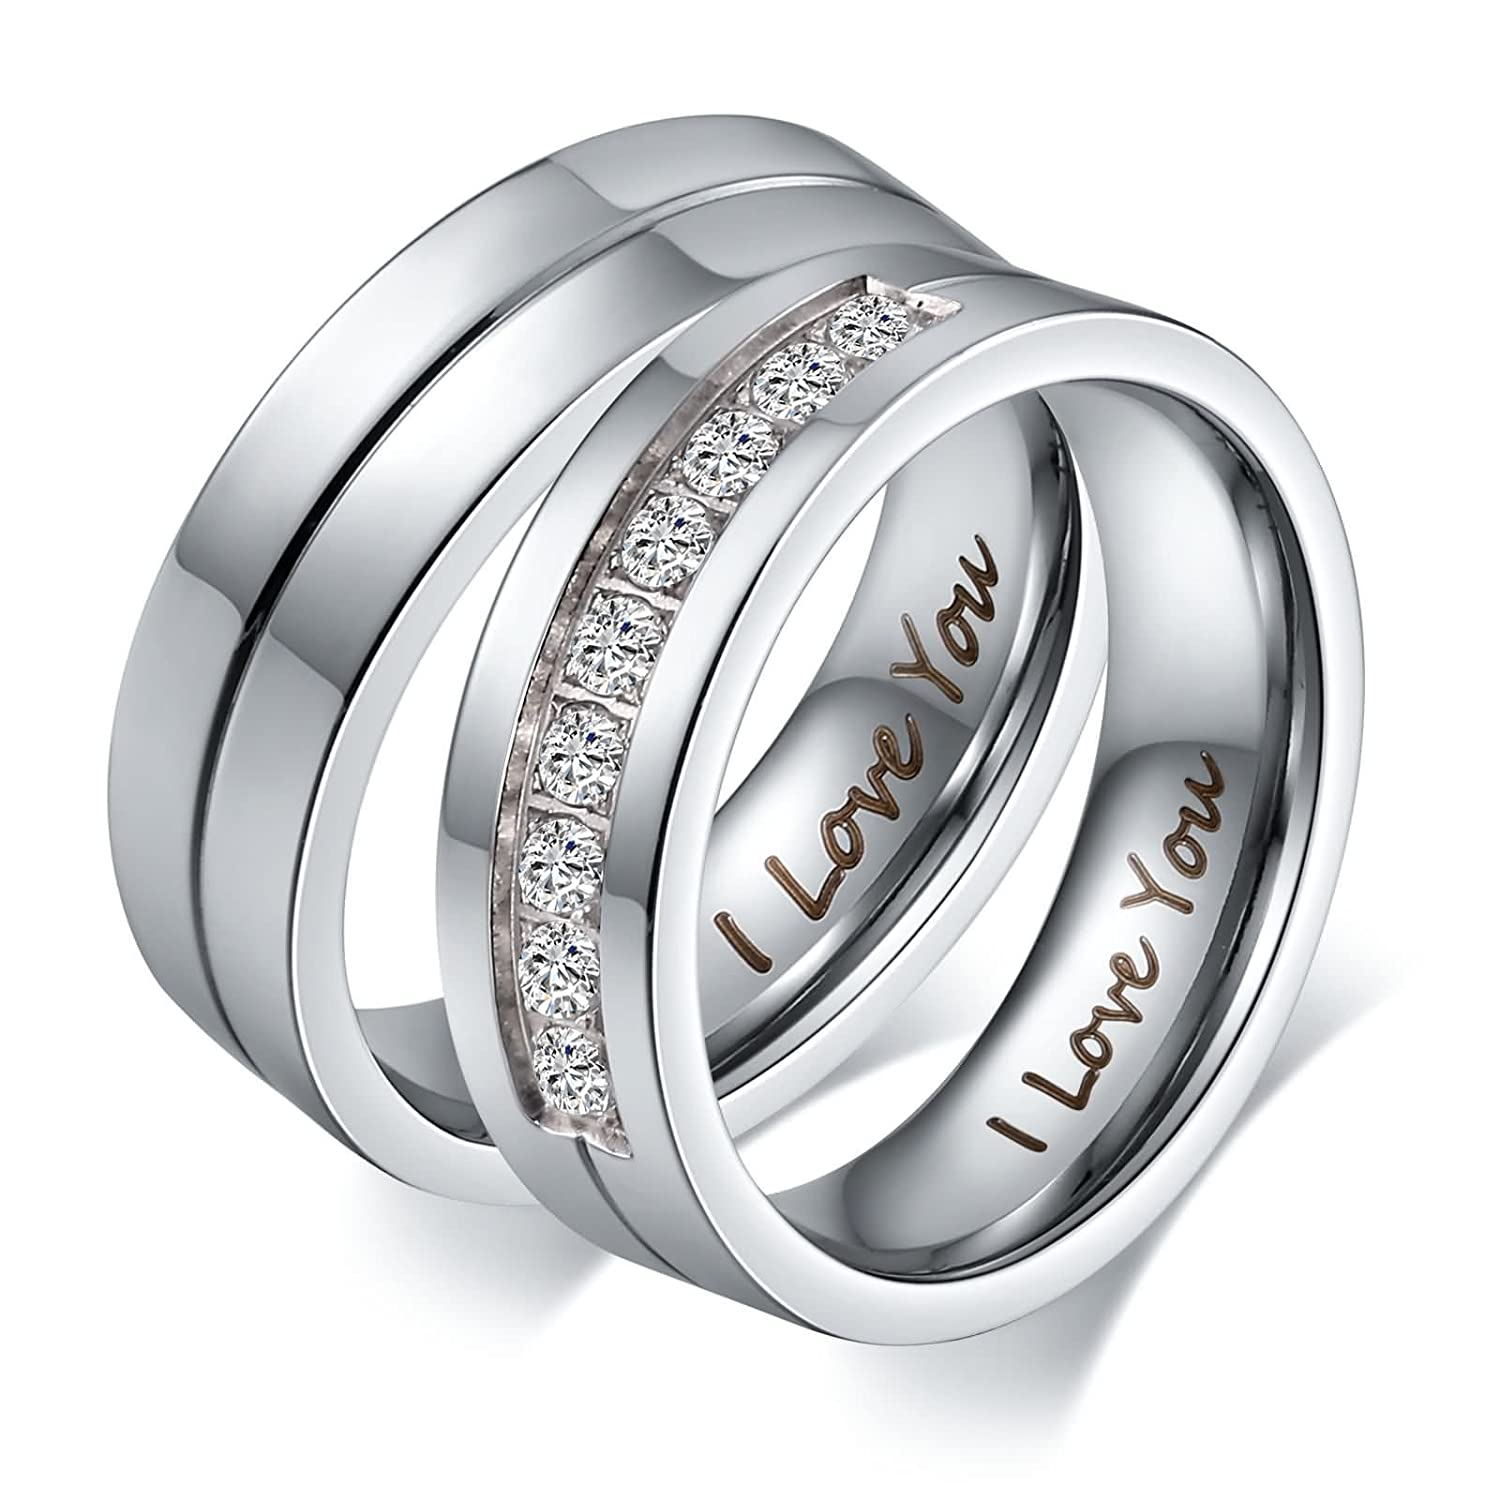 Aeici His & Hers I Love You Matching Rings Endless Love Stainless Steel Ladies Ring for Women Men Inlaid 9 CZ AEIXJ01KZI